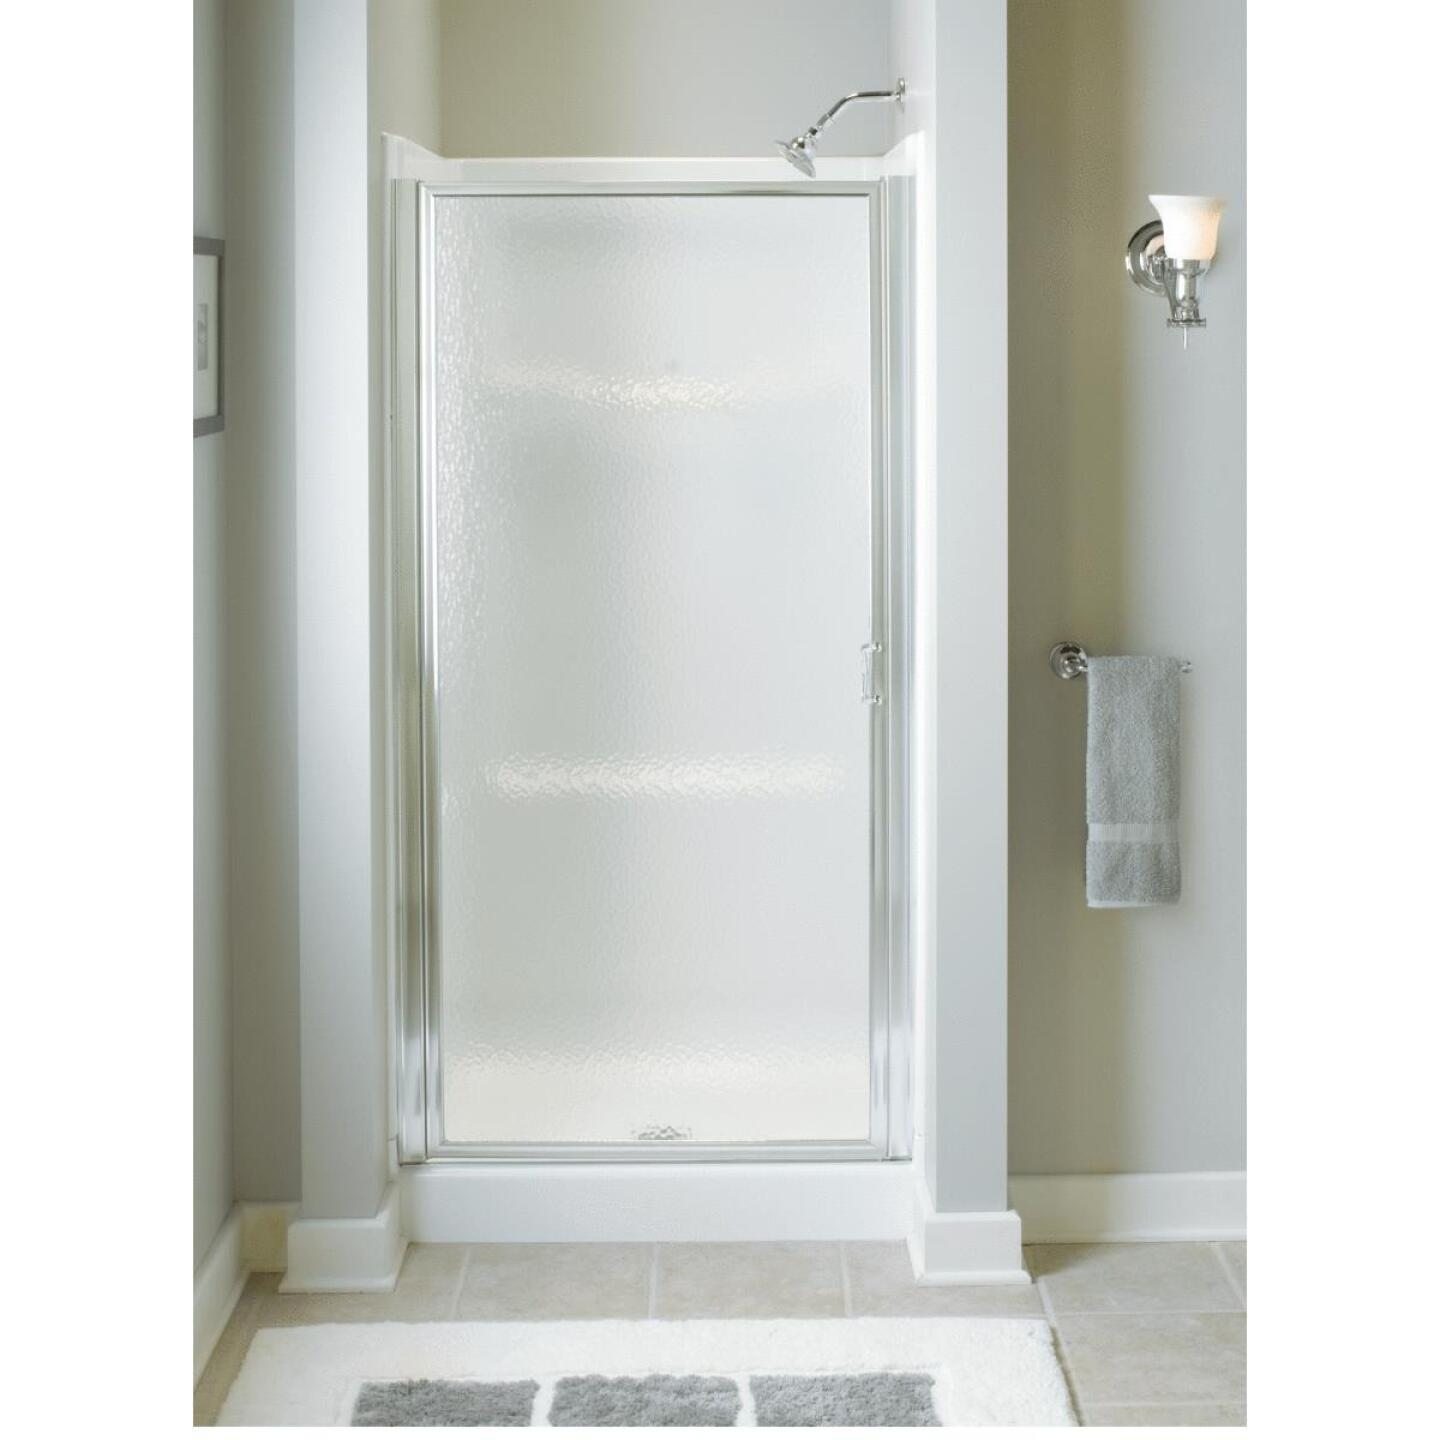 Sterling 36 In. W. X 64 In. H. Chrome Hammered Glass Standard Pivot Shower Door Image 2